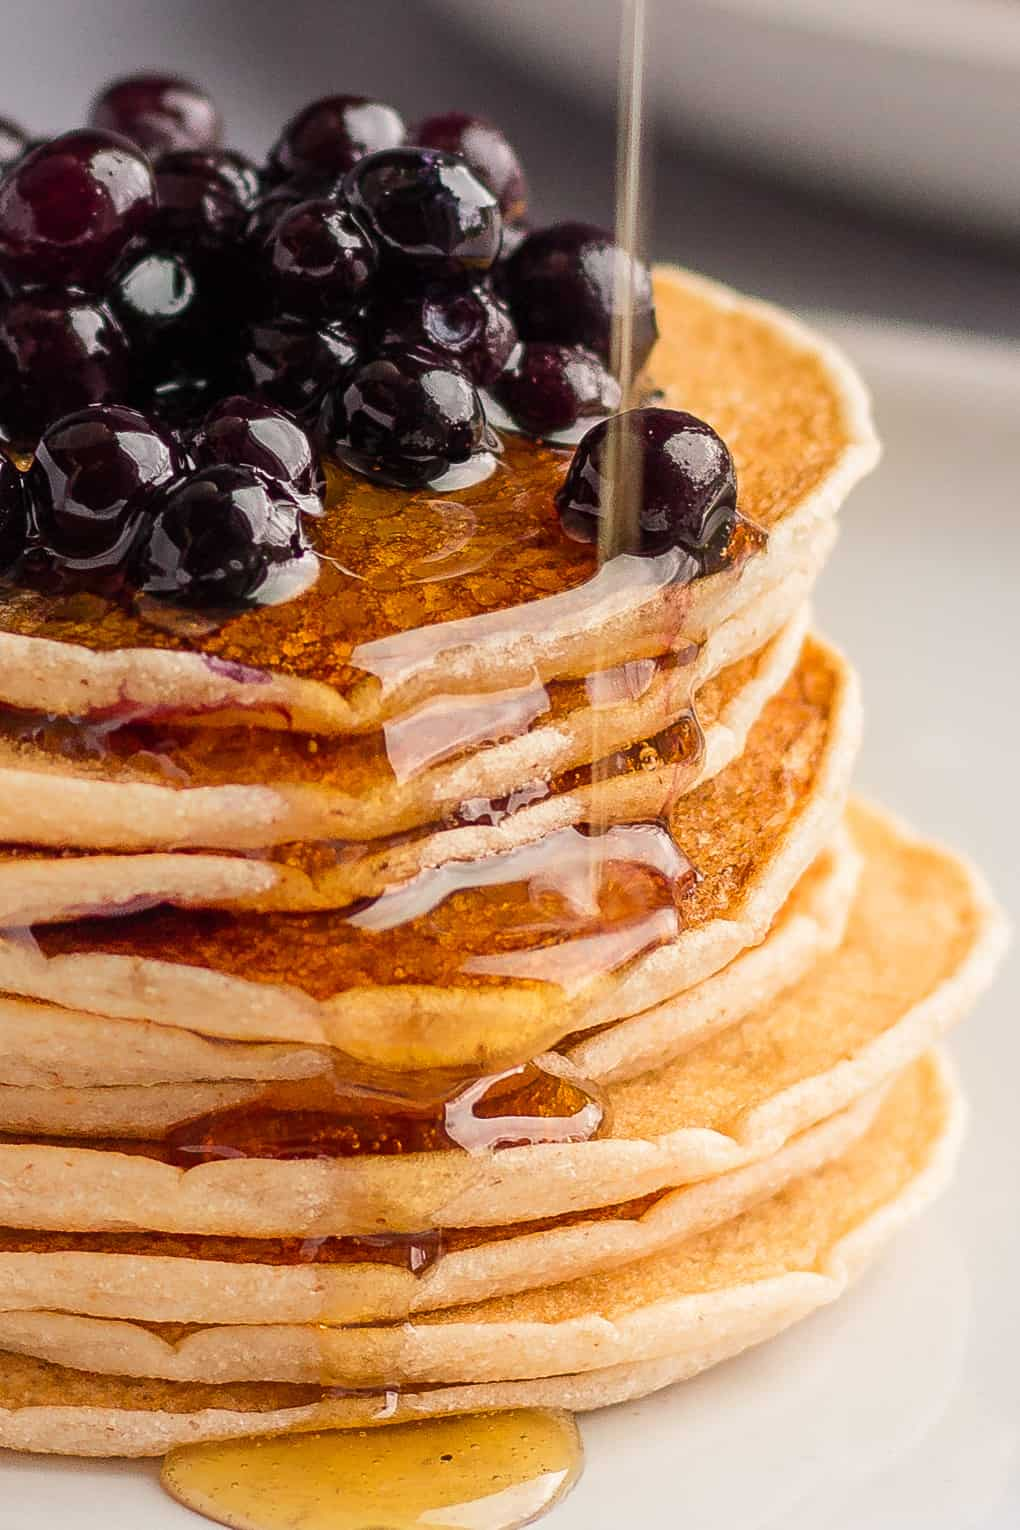 Maple syrup drizzle over Cassava flour pancakes